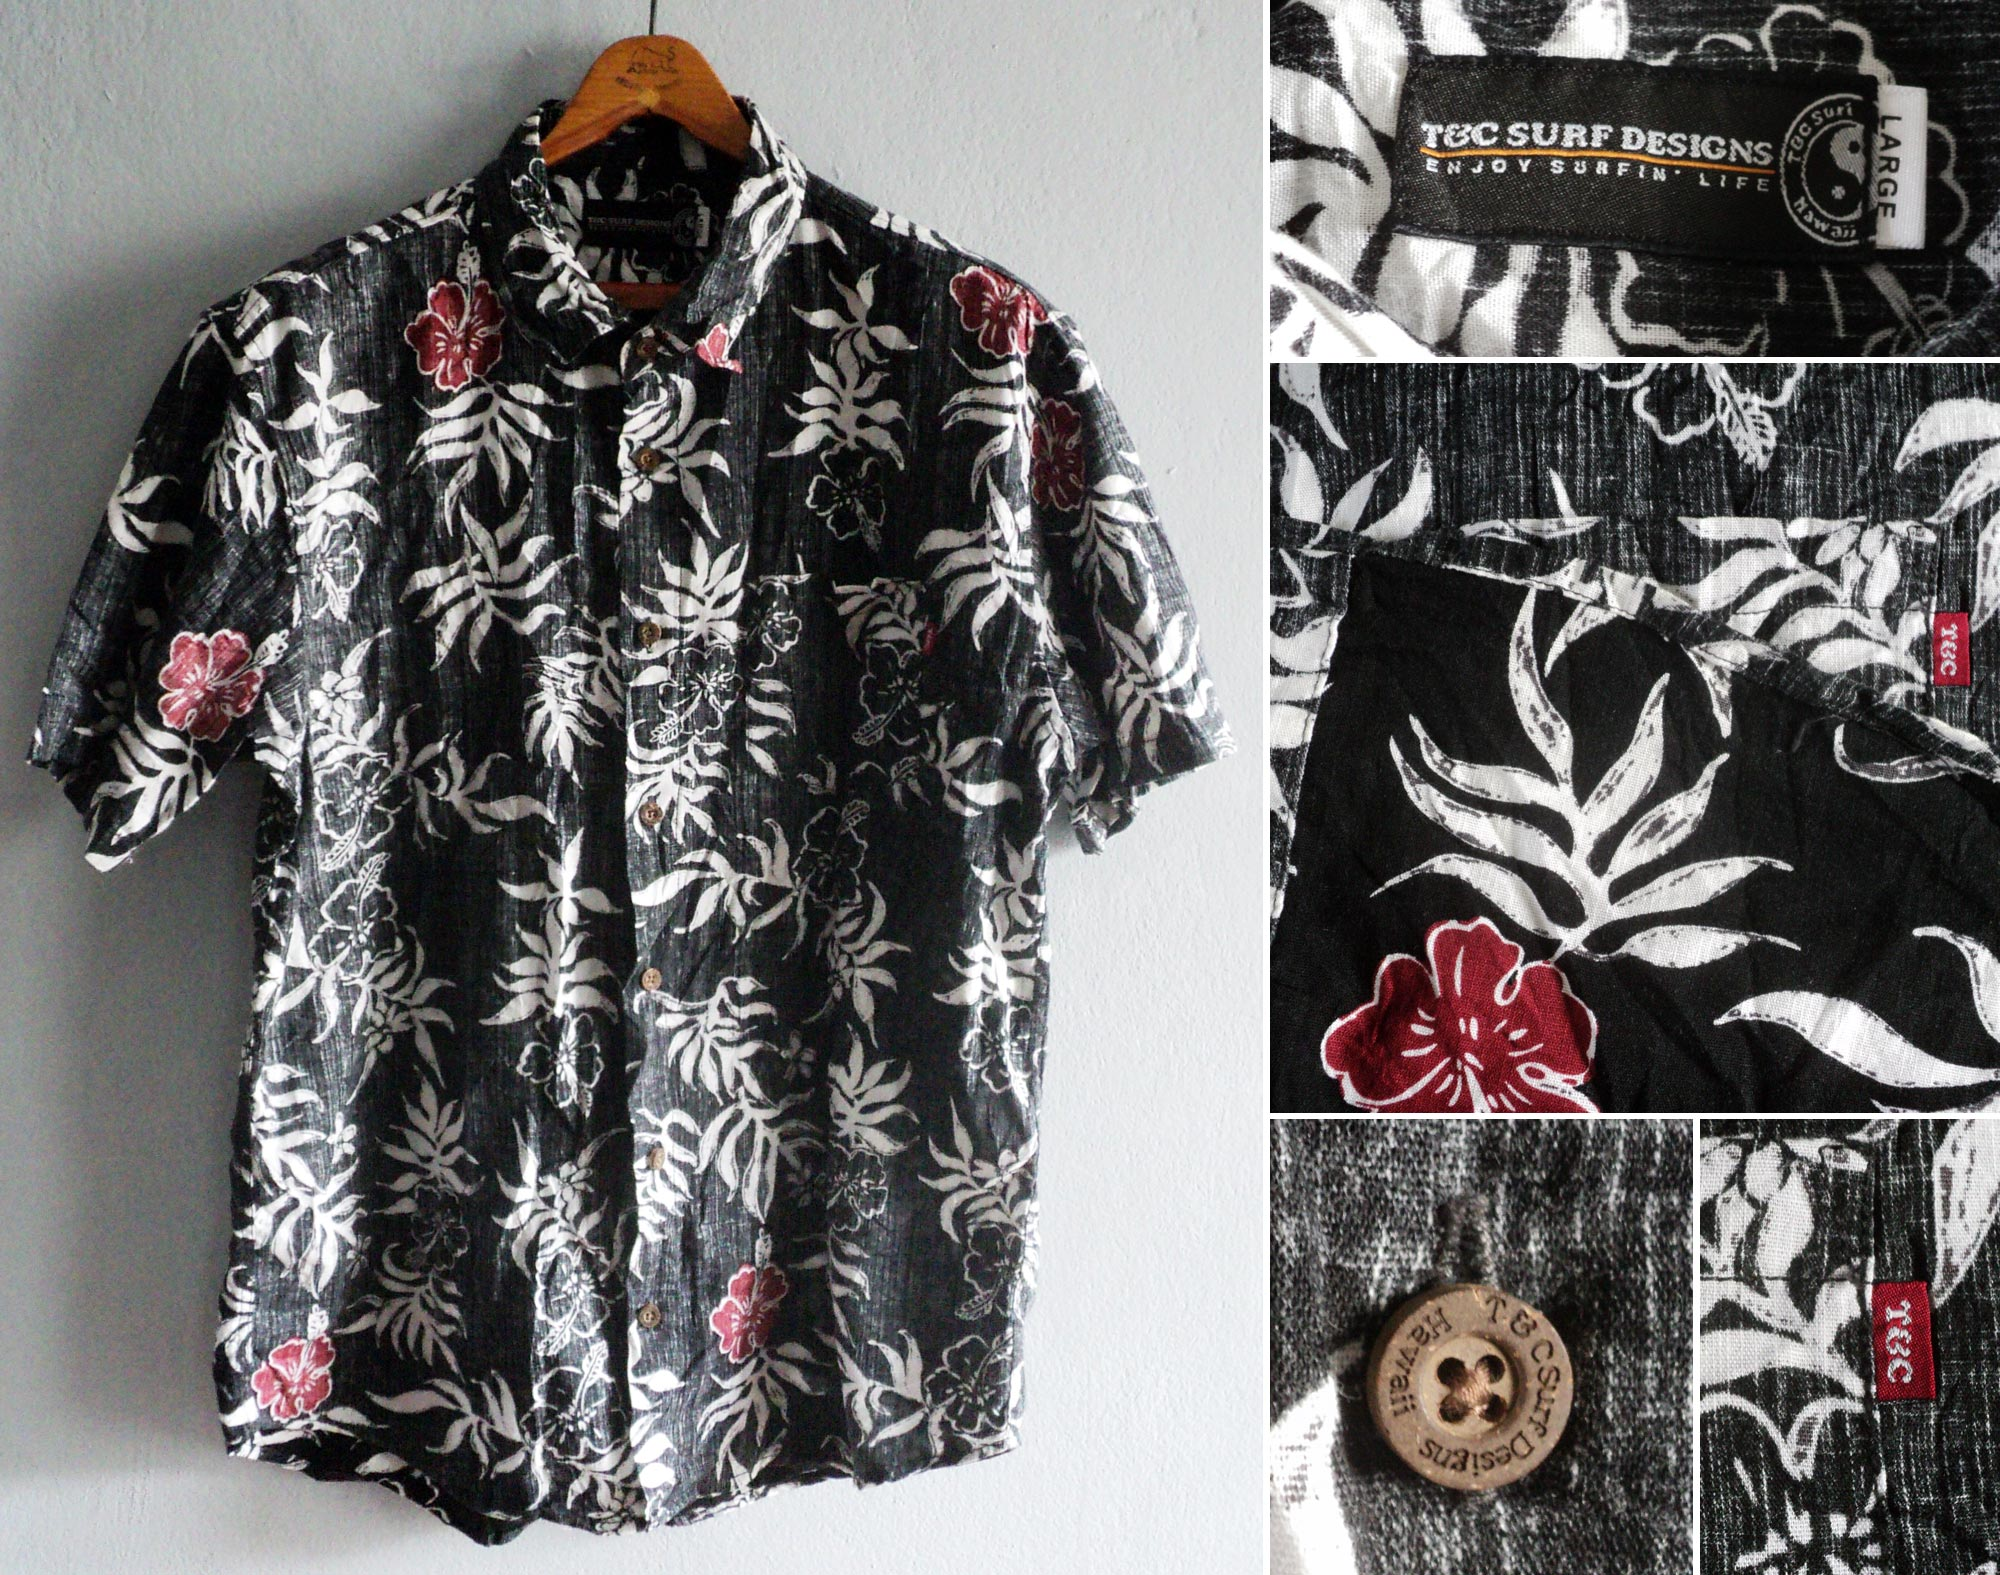 Hawaii, Town-and-Country, Surf, Designs, L, kzyshop